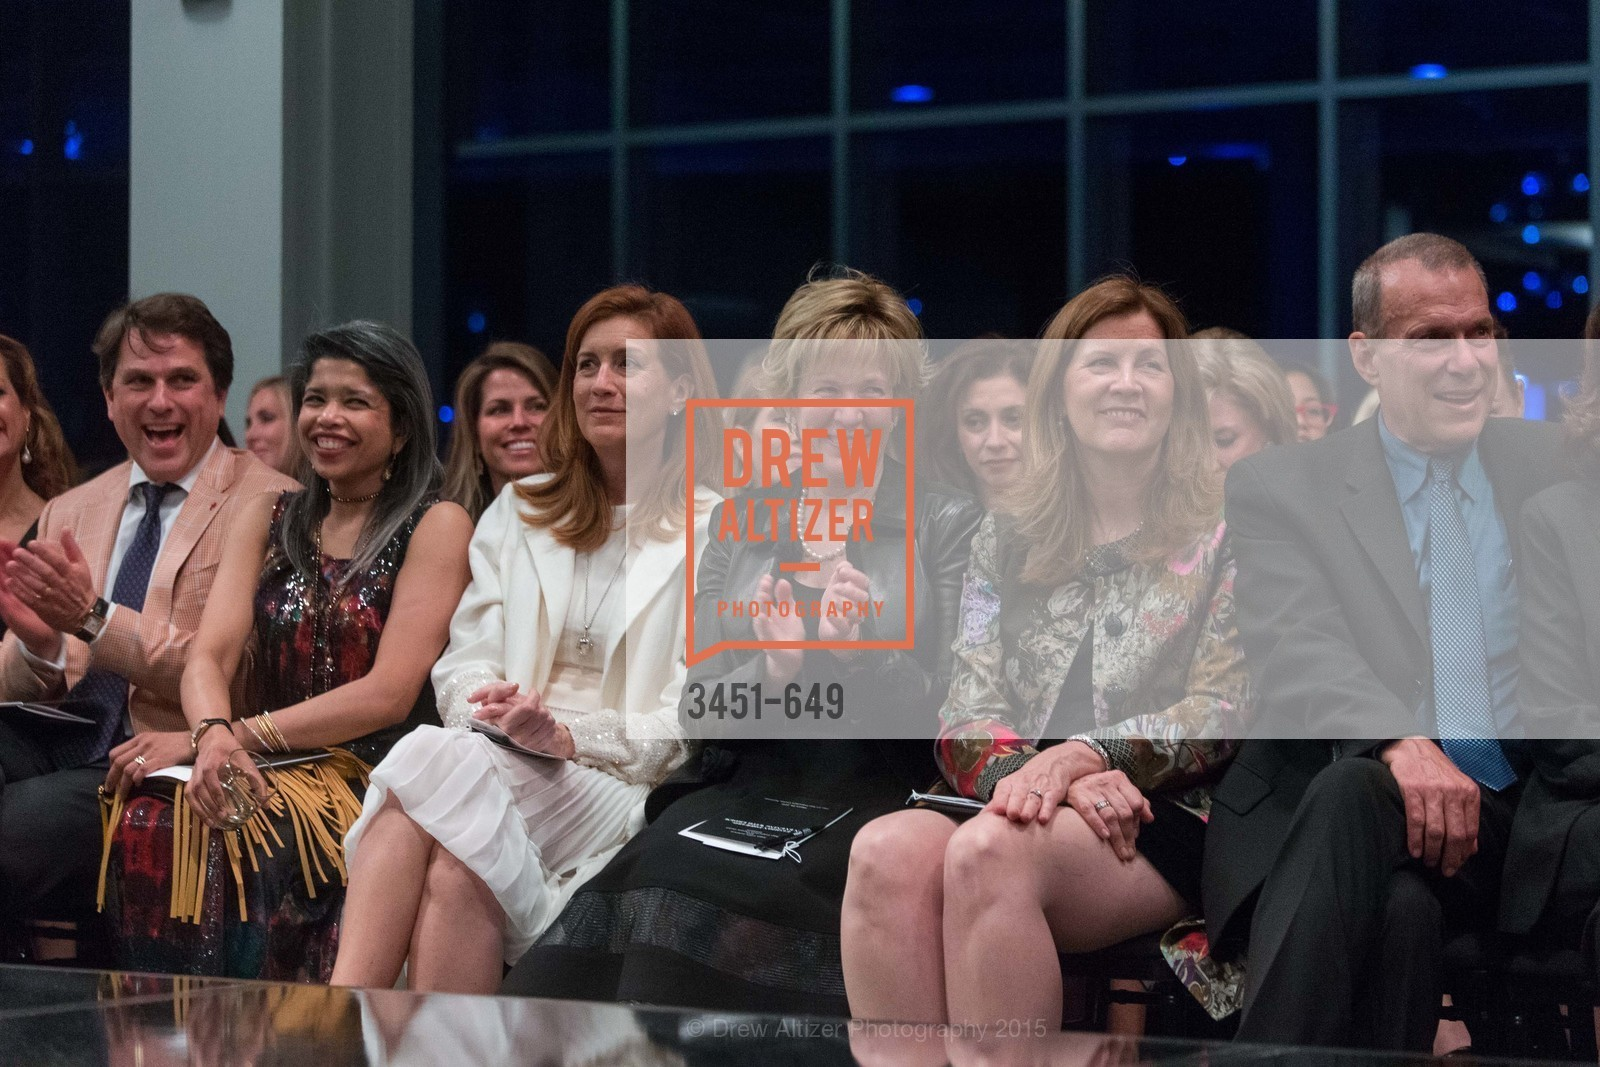 Gregory Malin, Deepa Pakianathan, Jean Larette, Jacqueline Erdman, David Gockley, Fashion Forward: An Evening with Erdem presented by SF Opera Guild and Saks Fifth Avenue, Pier 27. Pier 27, The Embarcadero, March 25th, 2015,Drew Altizer, Drew Altizer Photography, full-service agency, private events, San Francisco photographer, photographer california